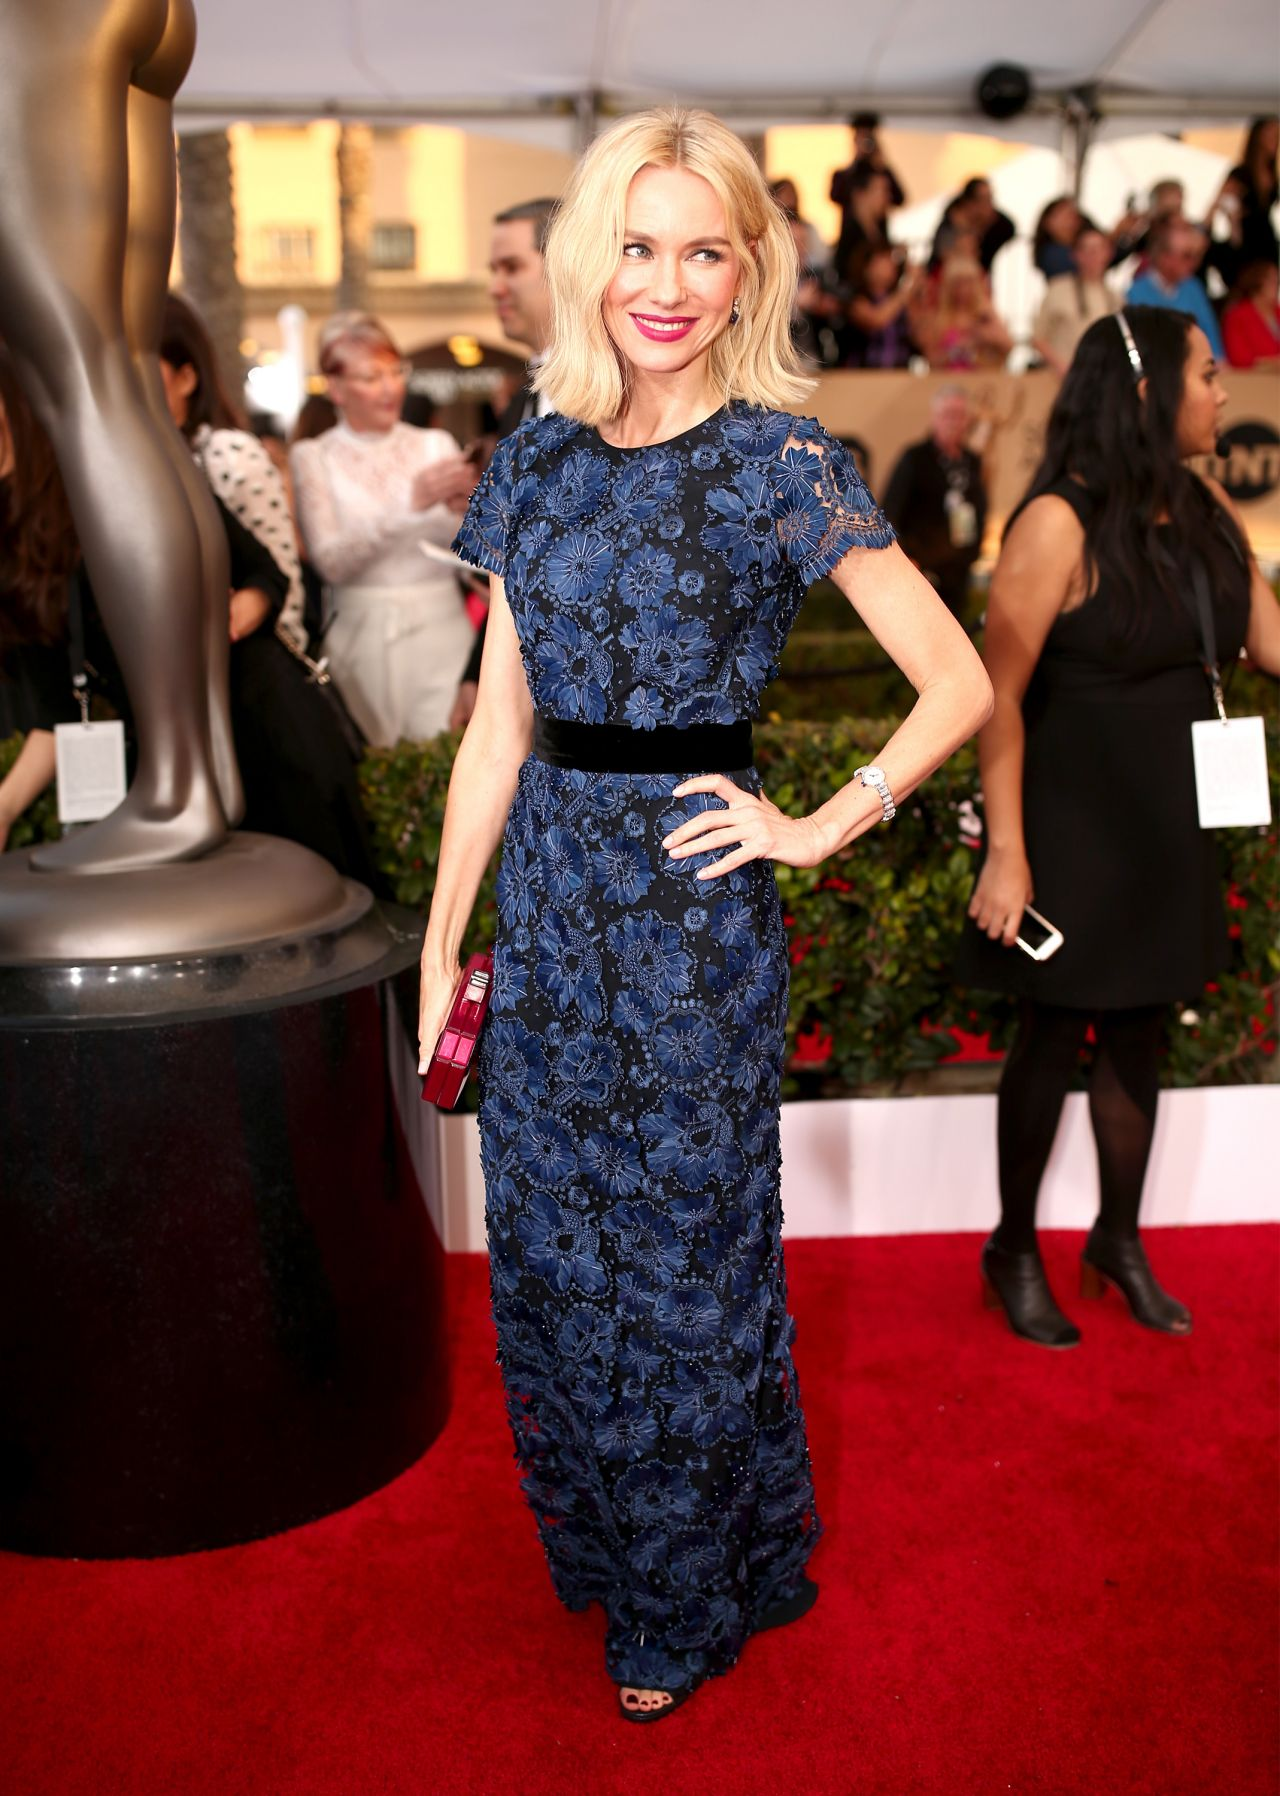 naomi-watts-sag-awards-2016-at-shrine-auditorium-in-los-angeles-2